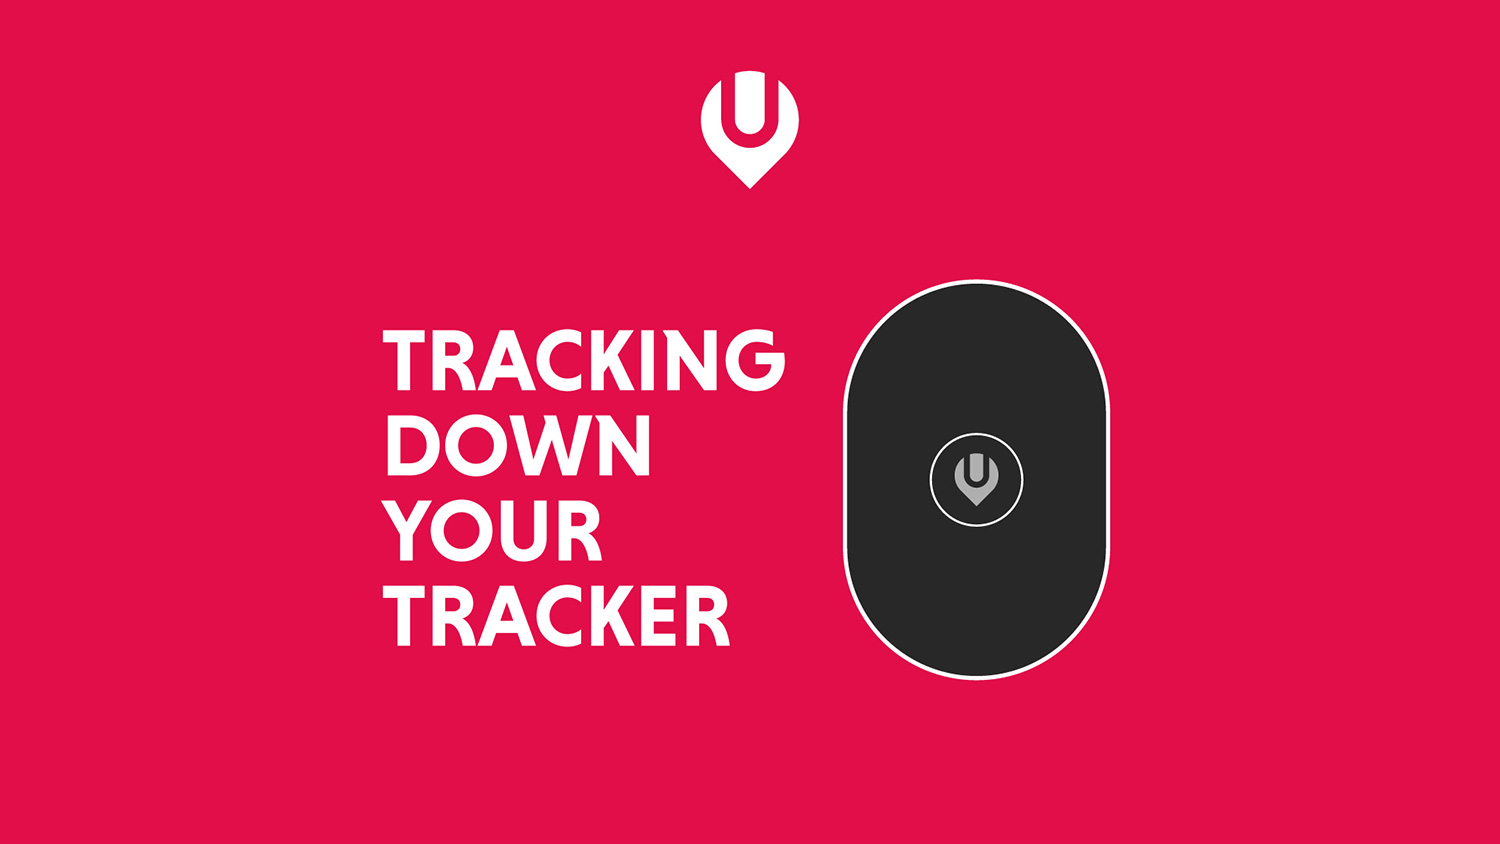 Tracking down your tracker